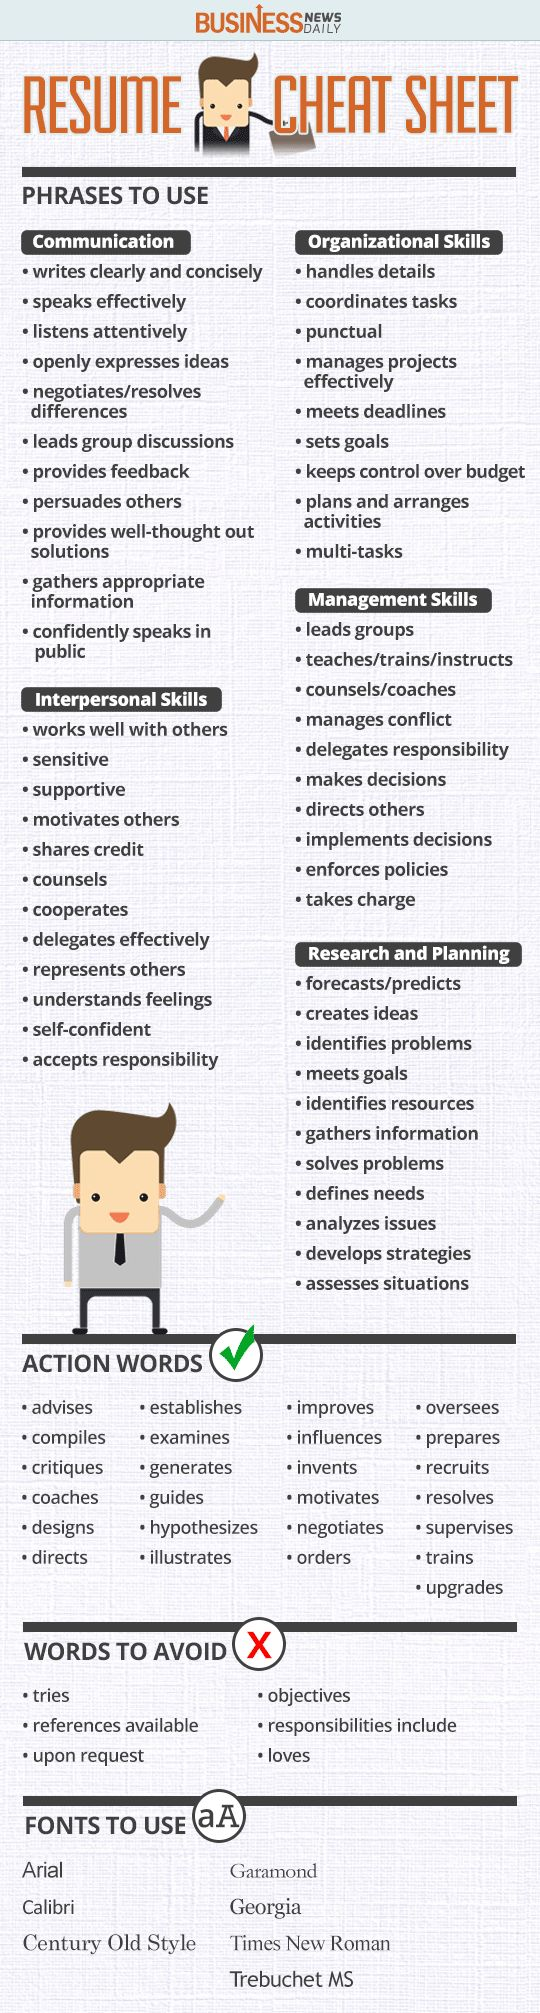 Opposenewapstandardsus  Ravishing  Ideas About Resume On Pinterest  Cv Format Resume  With Exquisite Resume Cheat Sheet Infographic Andrews Almost Done With A Complete Unit On Employment Which With Beautiful Resume For Government Job Also Email Resume Template In Addition Medical Support Assistant Resume And Sample Skills Resume As Well As Professional Engineer Resume Additionally Executive Level Resume From Pinterestcom With Opposenewapstandardsus  Exquisite  Ideas About Resume On Pinterest  Cv Format Resume  With Beautiful Resume Cheat Sheet Infographic Andrews Almost Done With A Complete Unit On Employment Which And Ravishing Resume For Government Job Also Email Resume Template In Addition Medical Support Assistant Resume From Pinterestcom